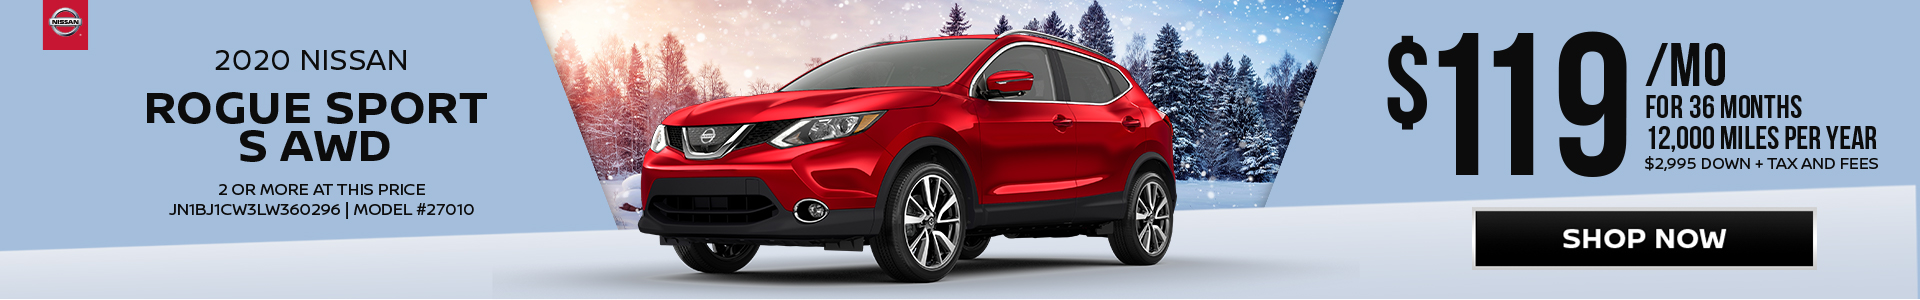 Nissan Rogue Sport $119 Lease